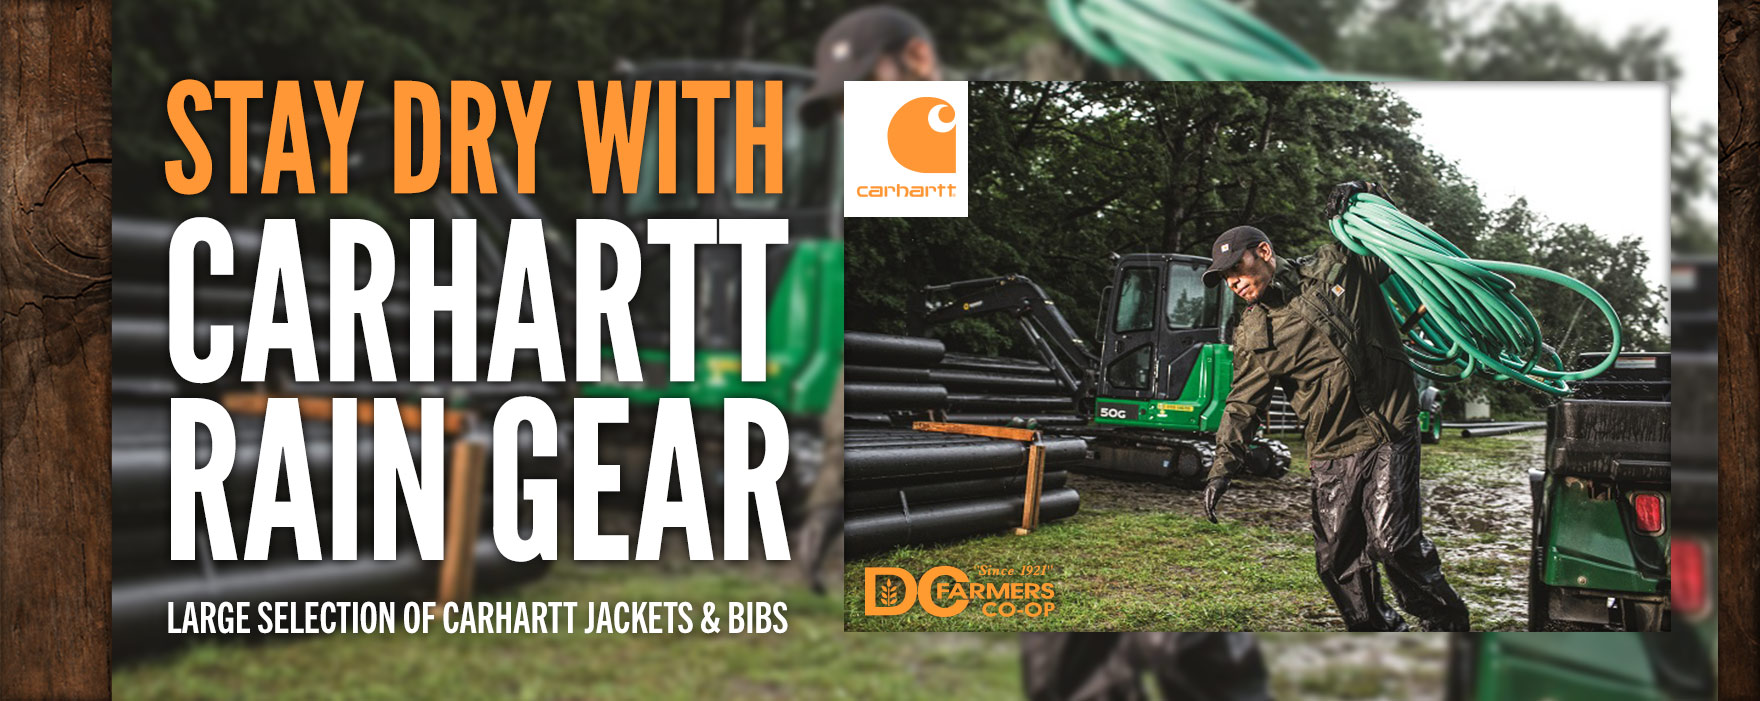 Stay dry with Carhartt Rain Gear.